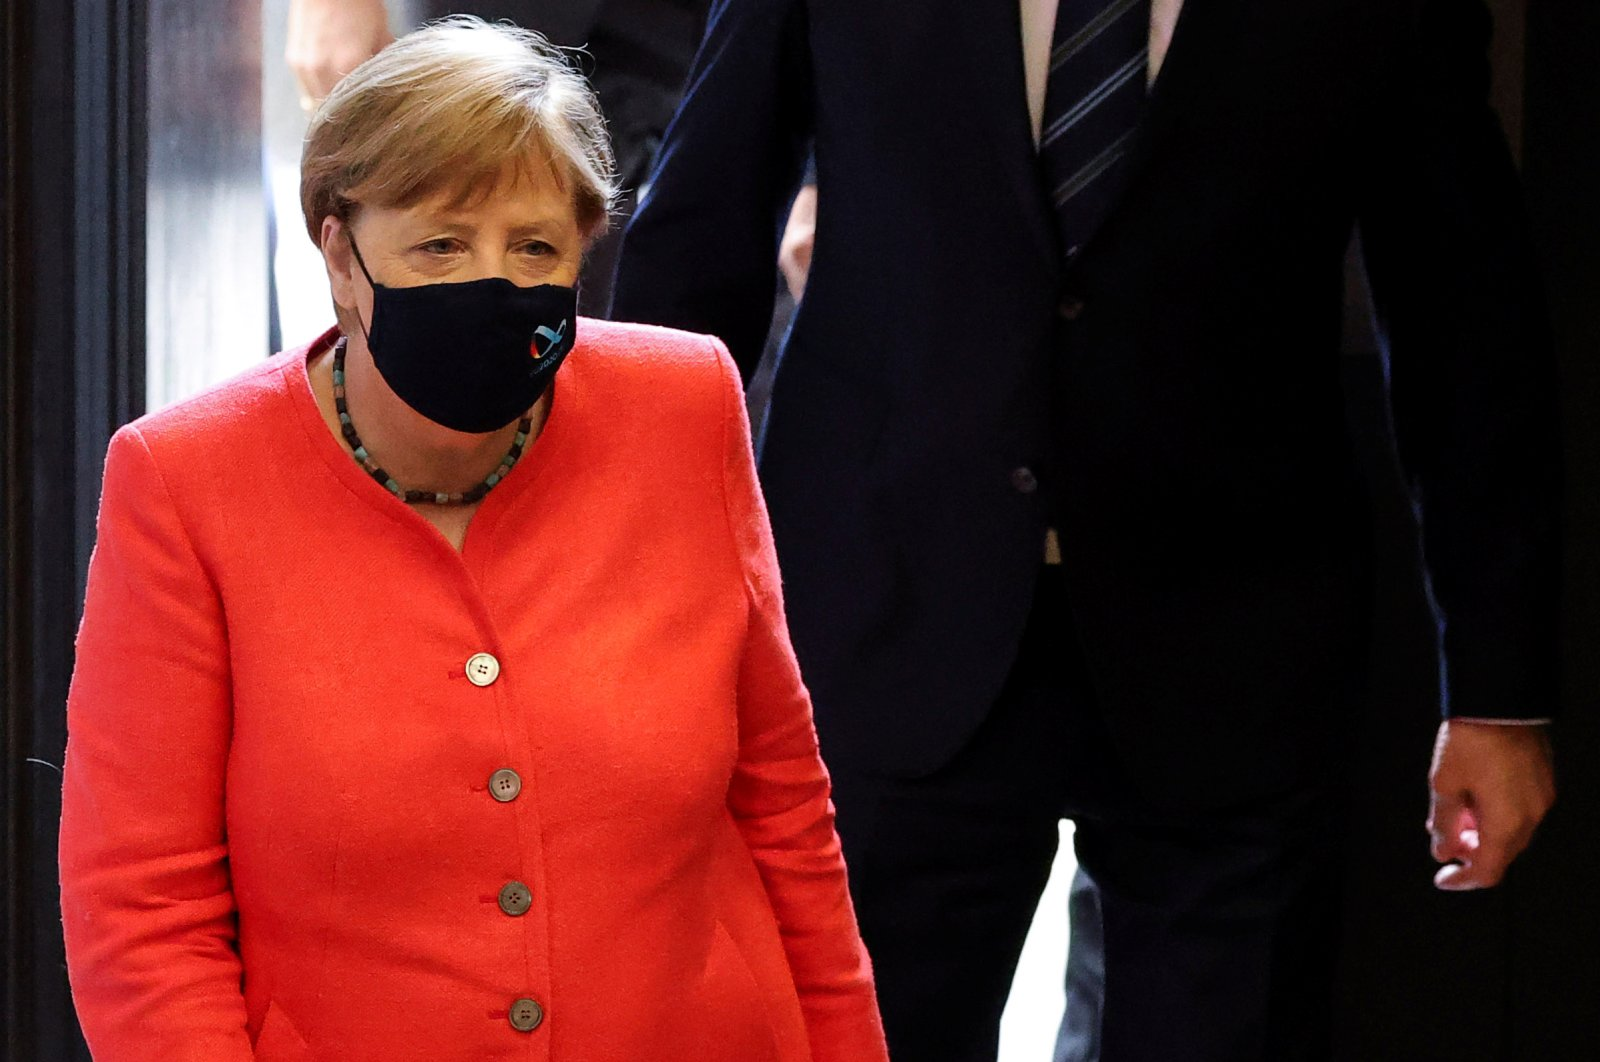 German Chancellor Angela Merkel wearing a face mask arrives to attend a session at the upper house of the German parliament Bundesrat, amid the outbreak of the coronavirus disease (COVID-19), in Berlin, July 3, 2020. (Reuters Photo)